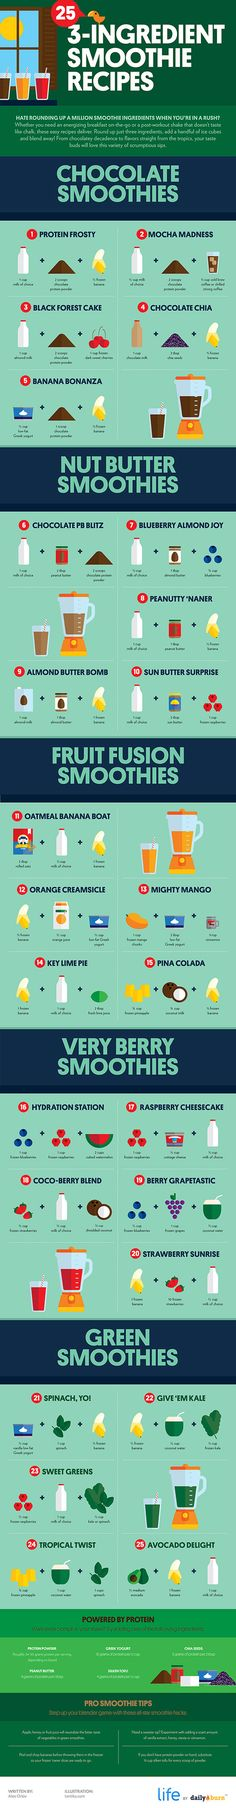 Healthy Eating | Quick and Easy Smoothie Recipes by Homemade Recipes at http://homemaderecipes.com/healthy/healthy-eating-diagrams